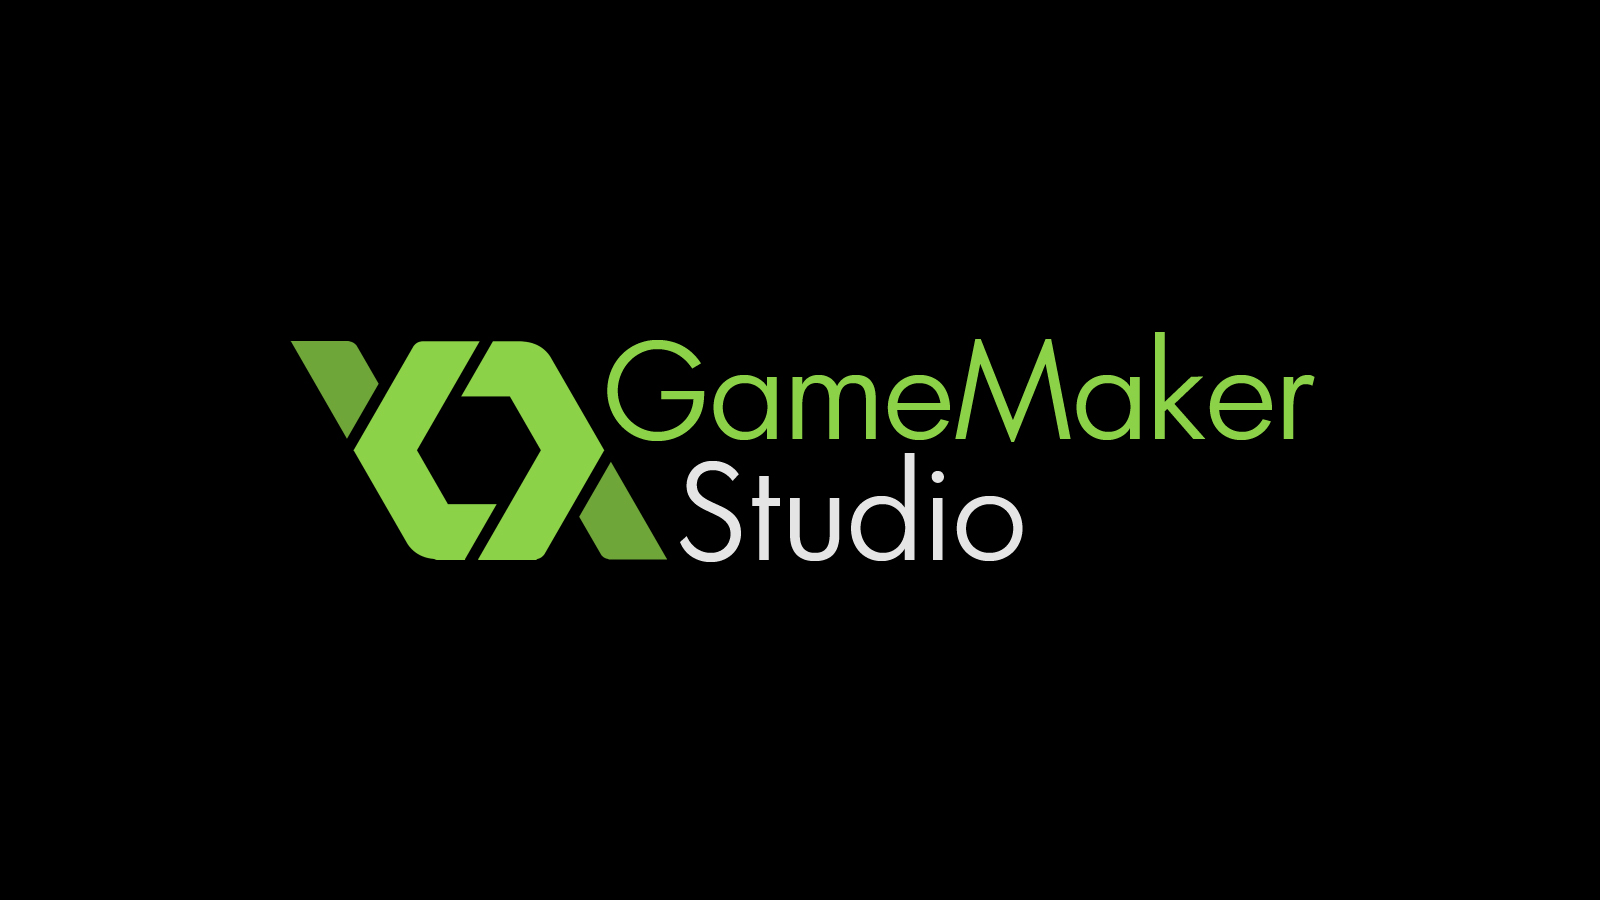 'Gamemaker Standard' free for a limited time, other versions discounted